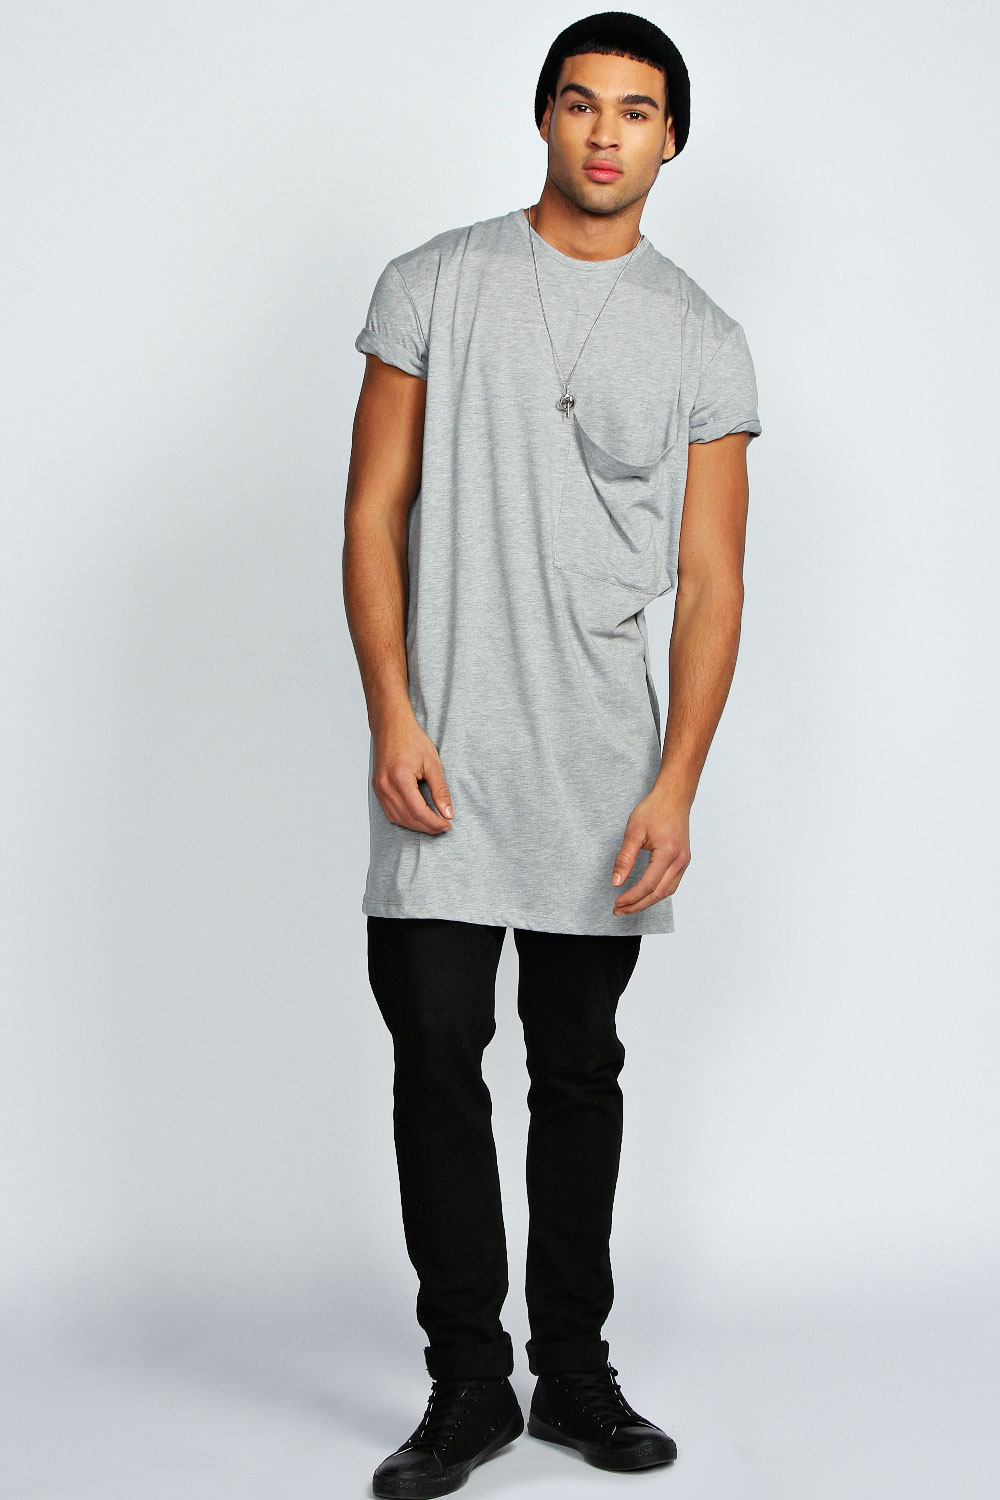 Buy low price, high quality mens extra long t shirts with worldwide shipping on coolvloadx4.ga